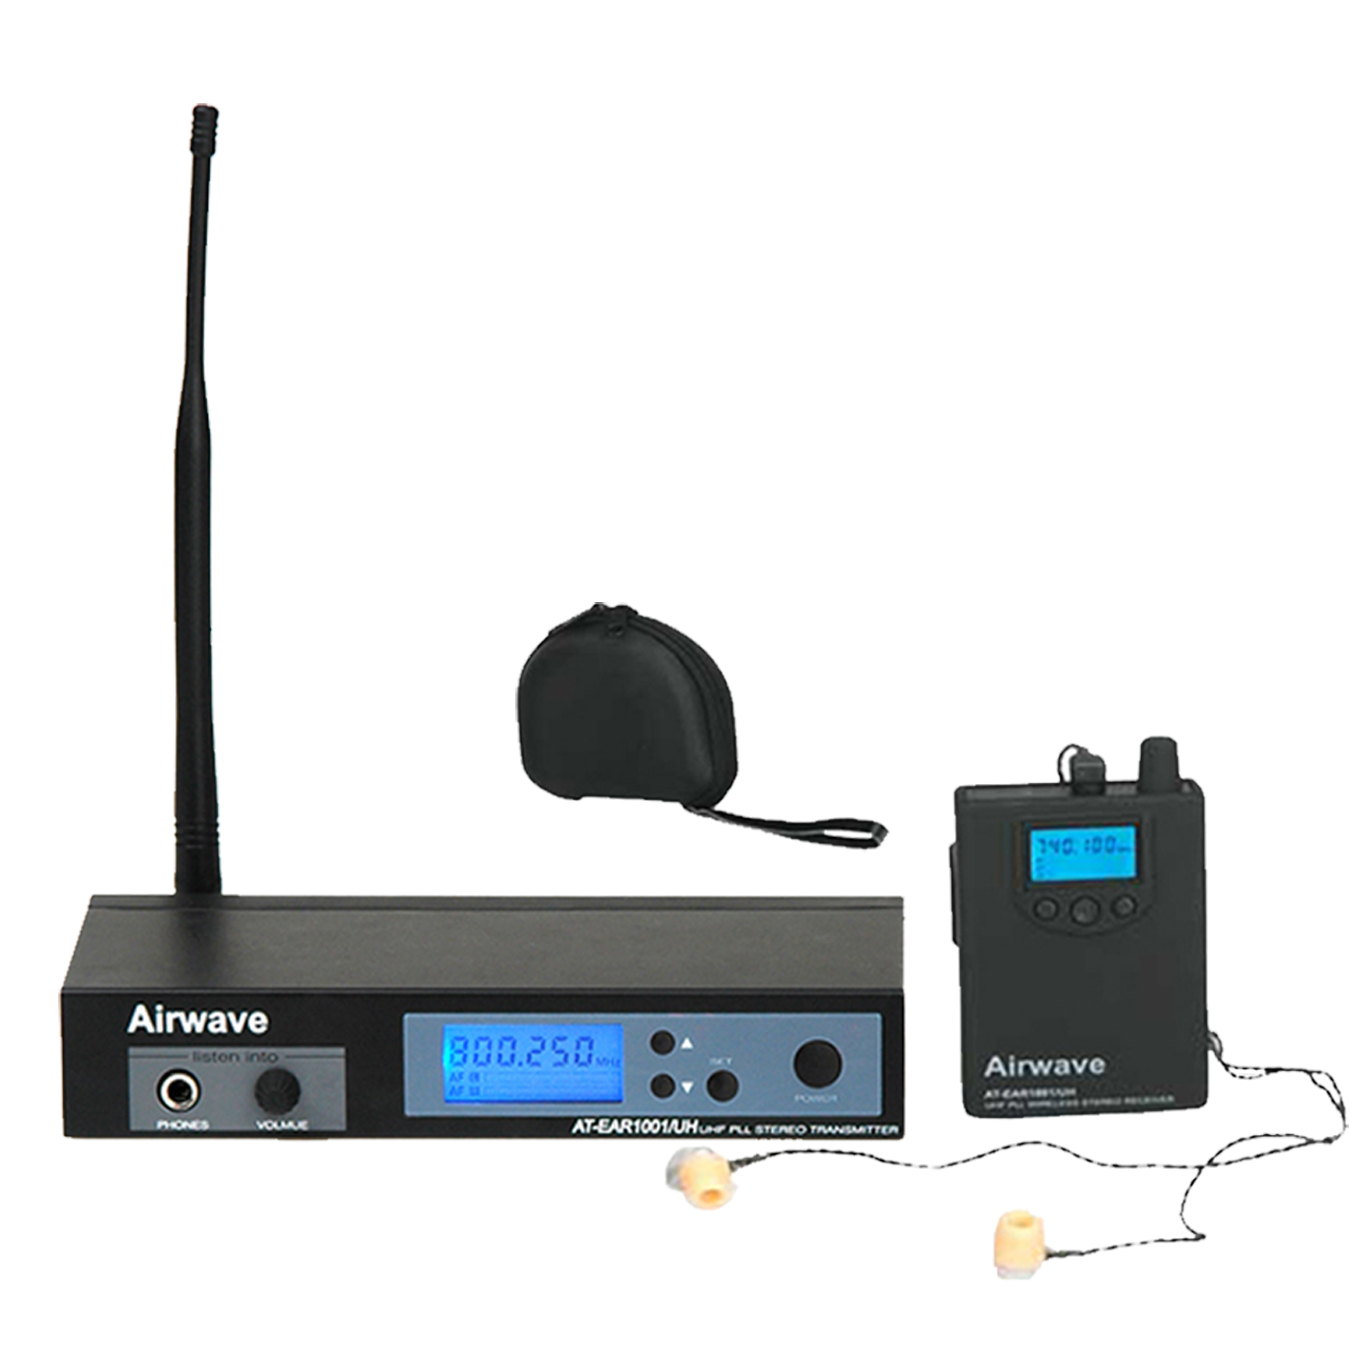 In Ear Monitor - Airwave Technologies - Wireless monitoring system